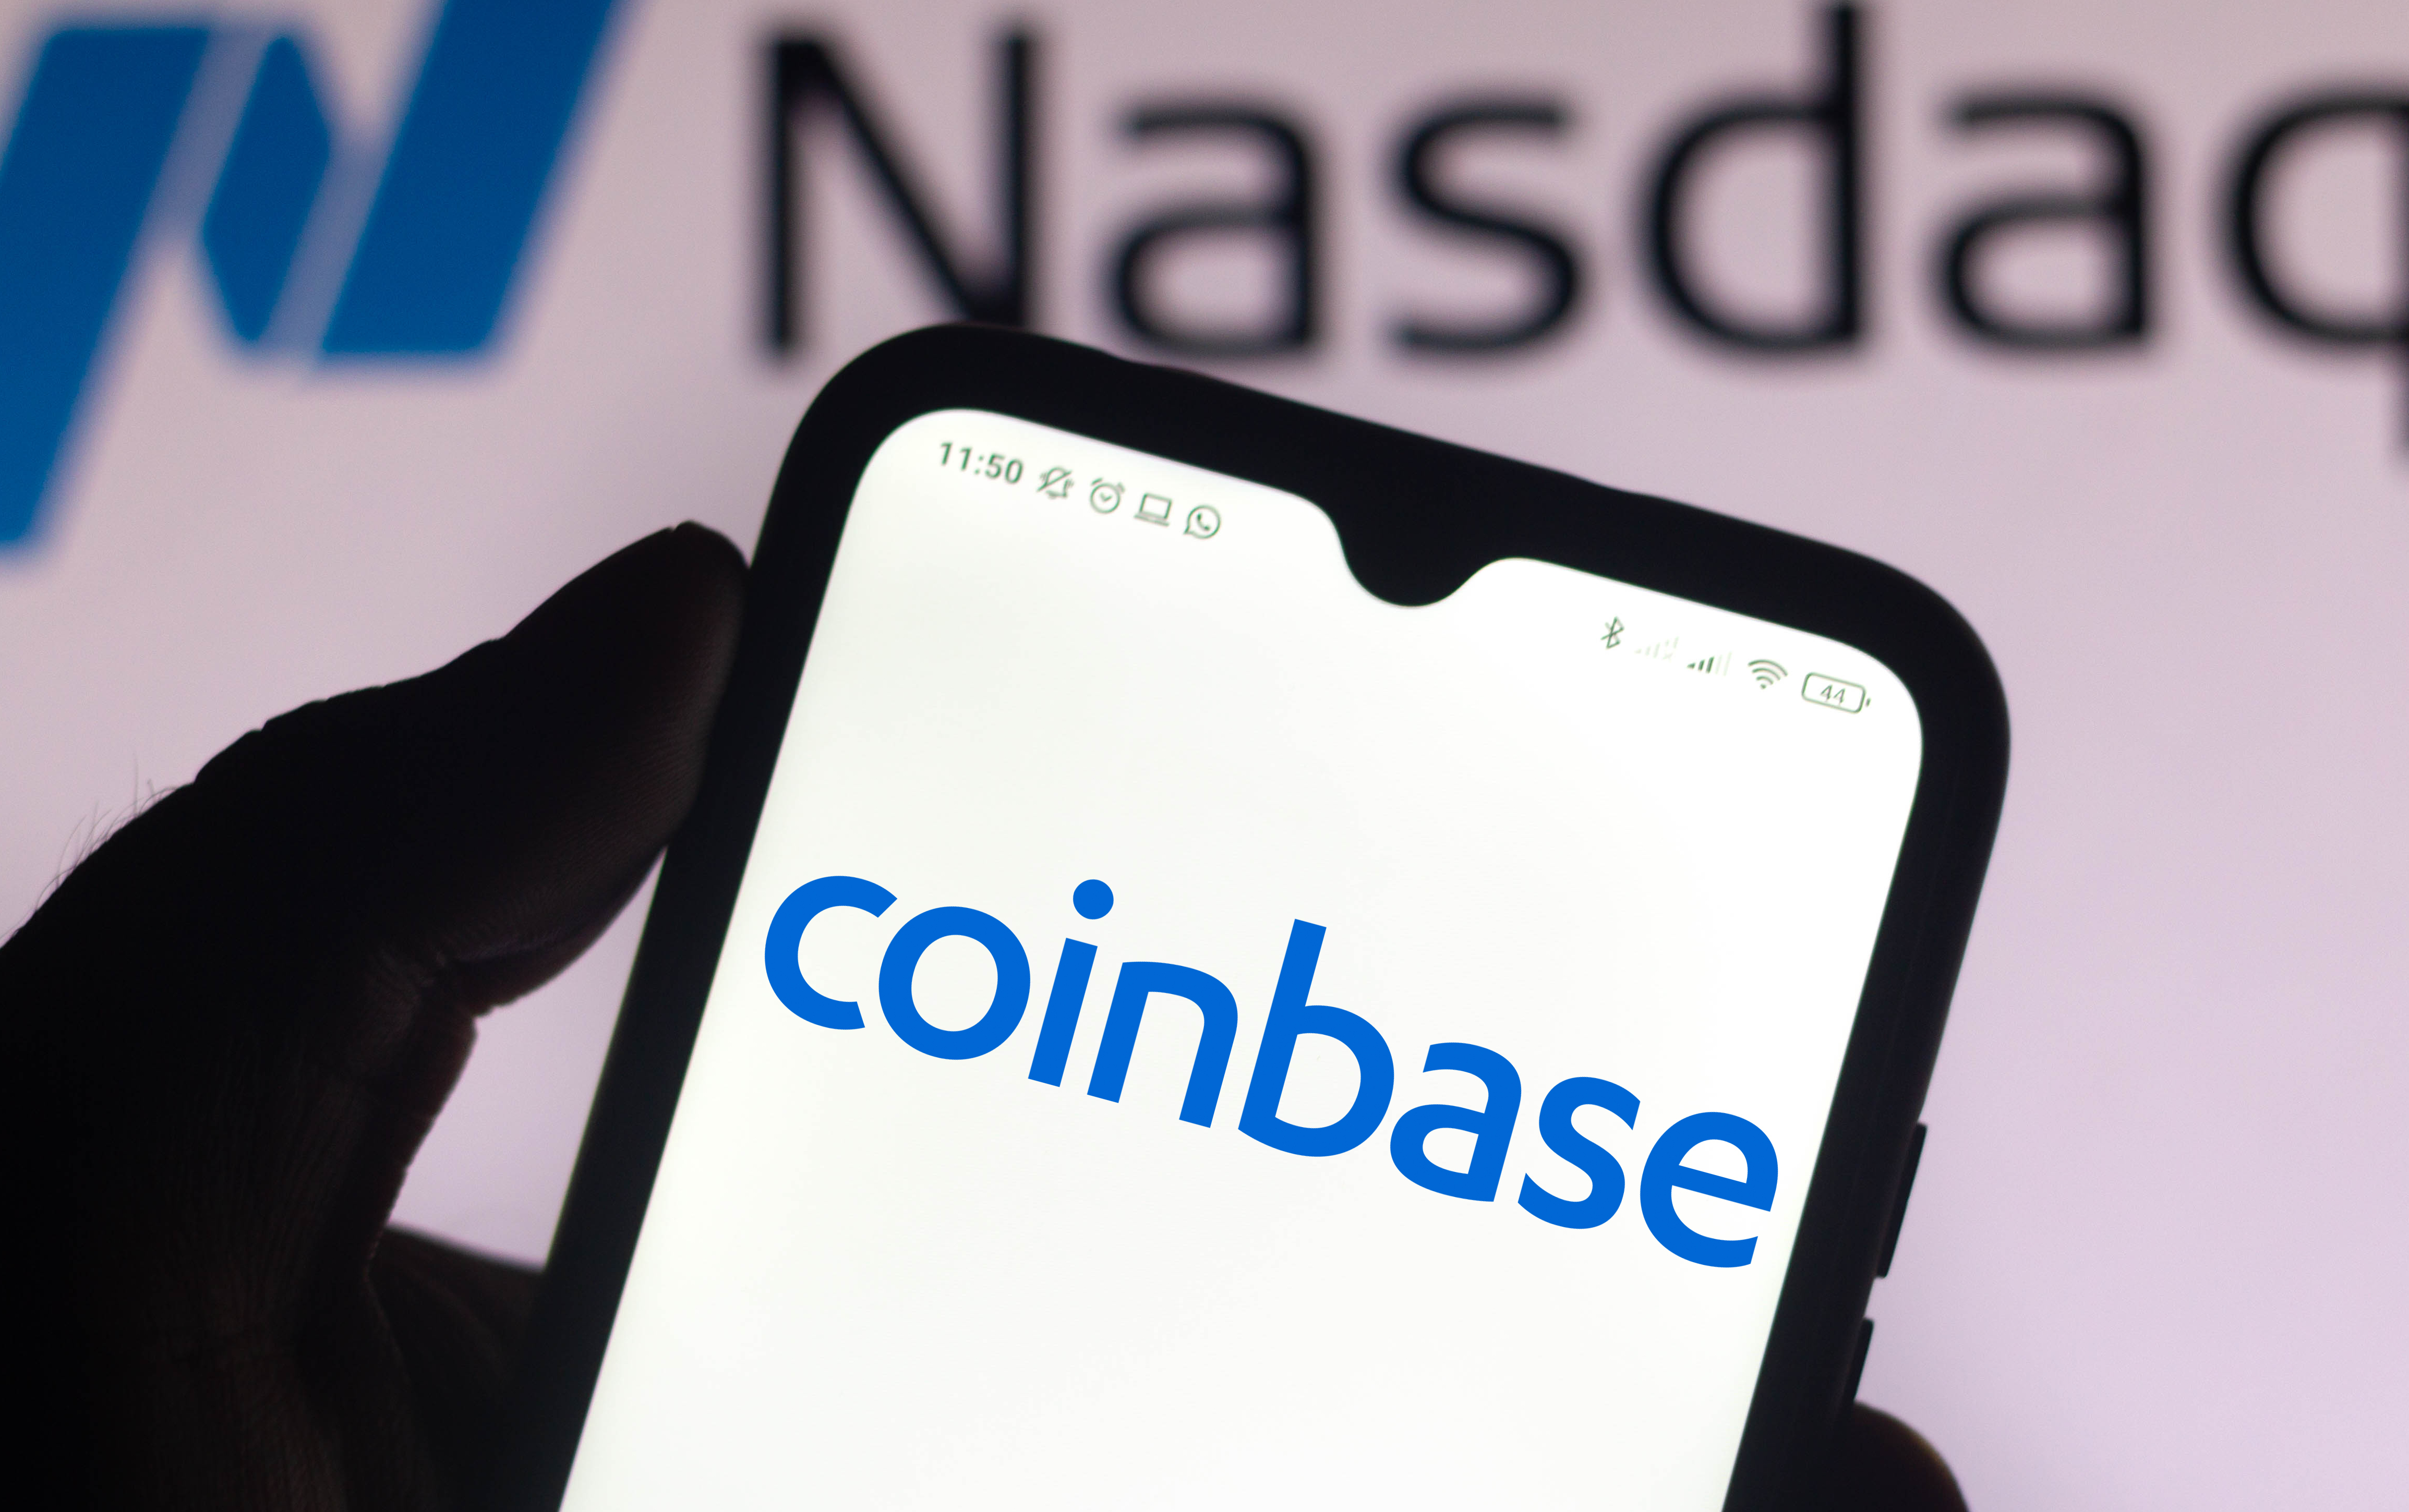 Crypto Exchange Coinbase Adds Support for the Tether (USDT) Stablecoin Citing Customer Demand